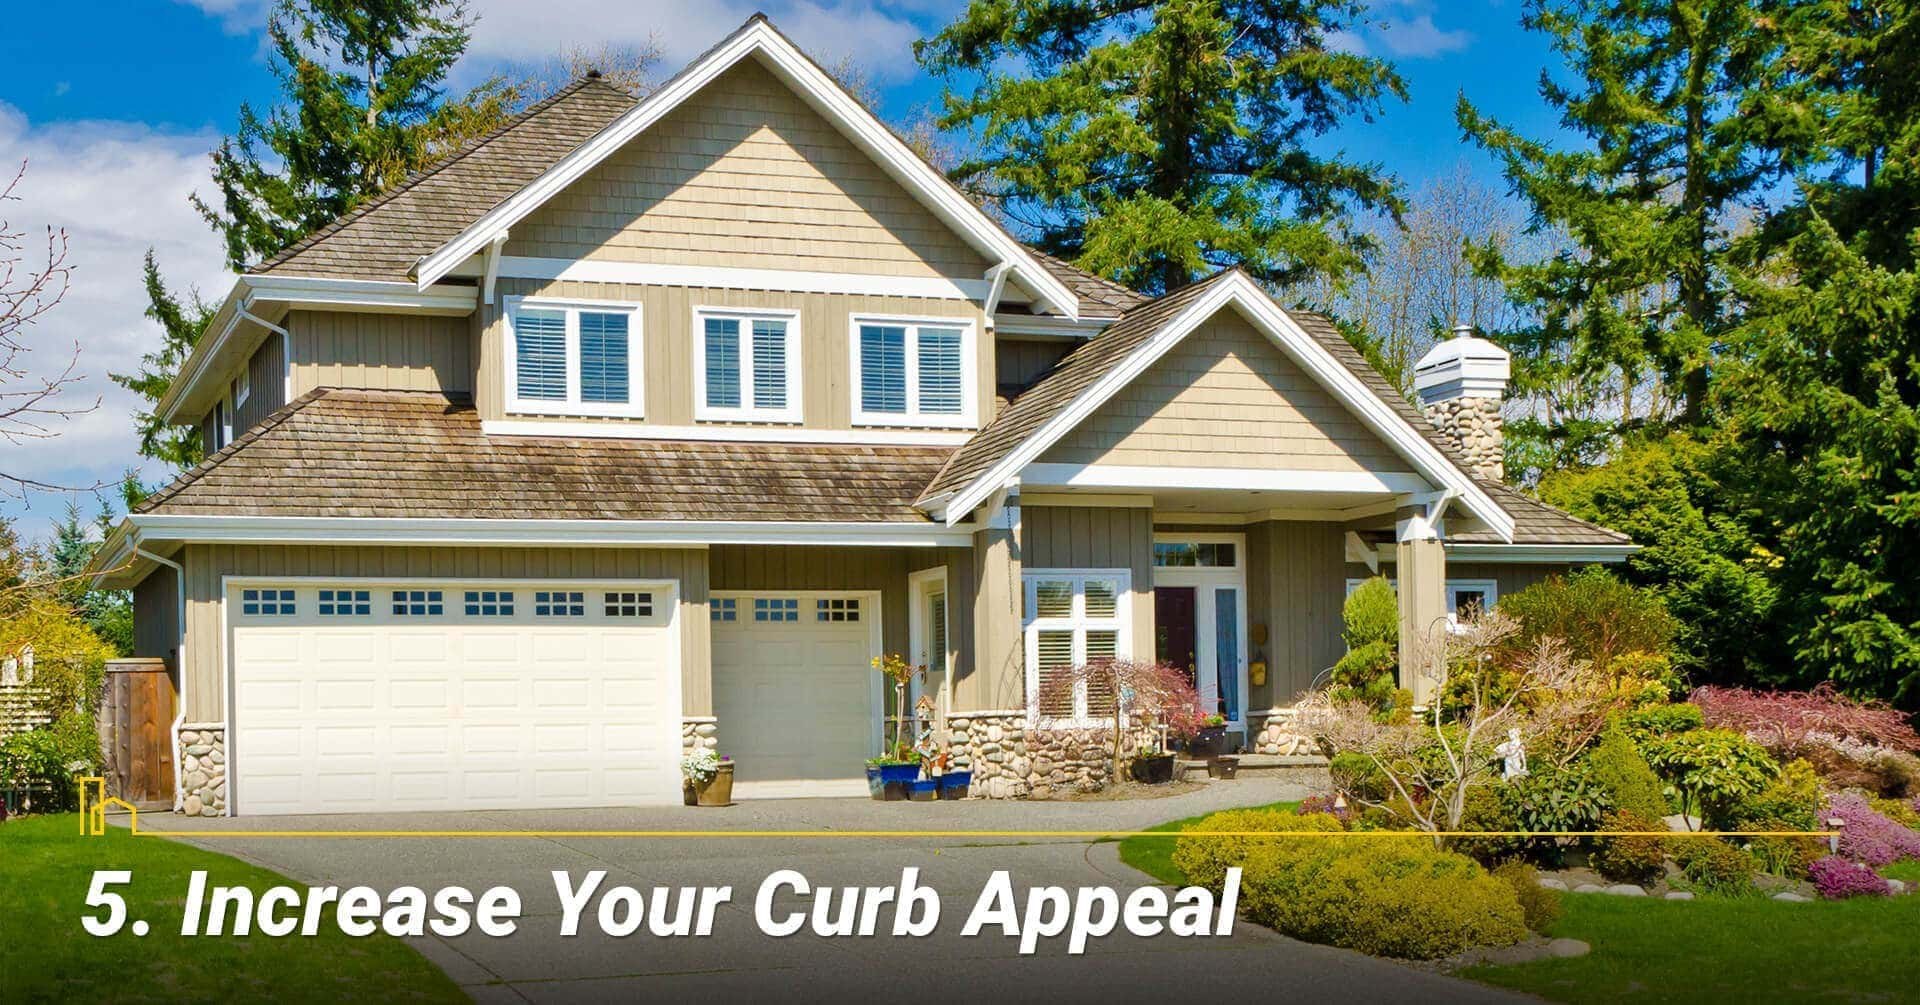 Increase Your Curb Appeal, maintain your curb appeal